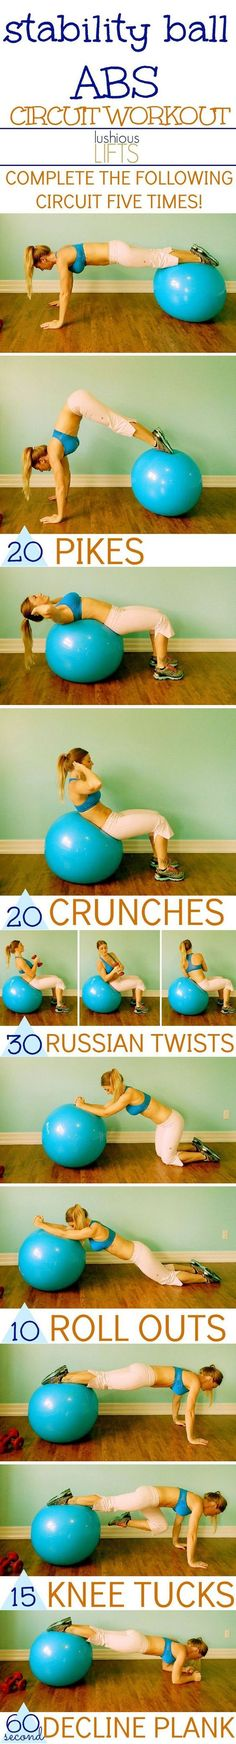 Stability Ball Abdominal Circuit Workout